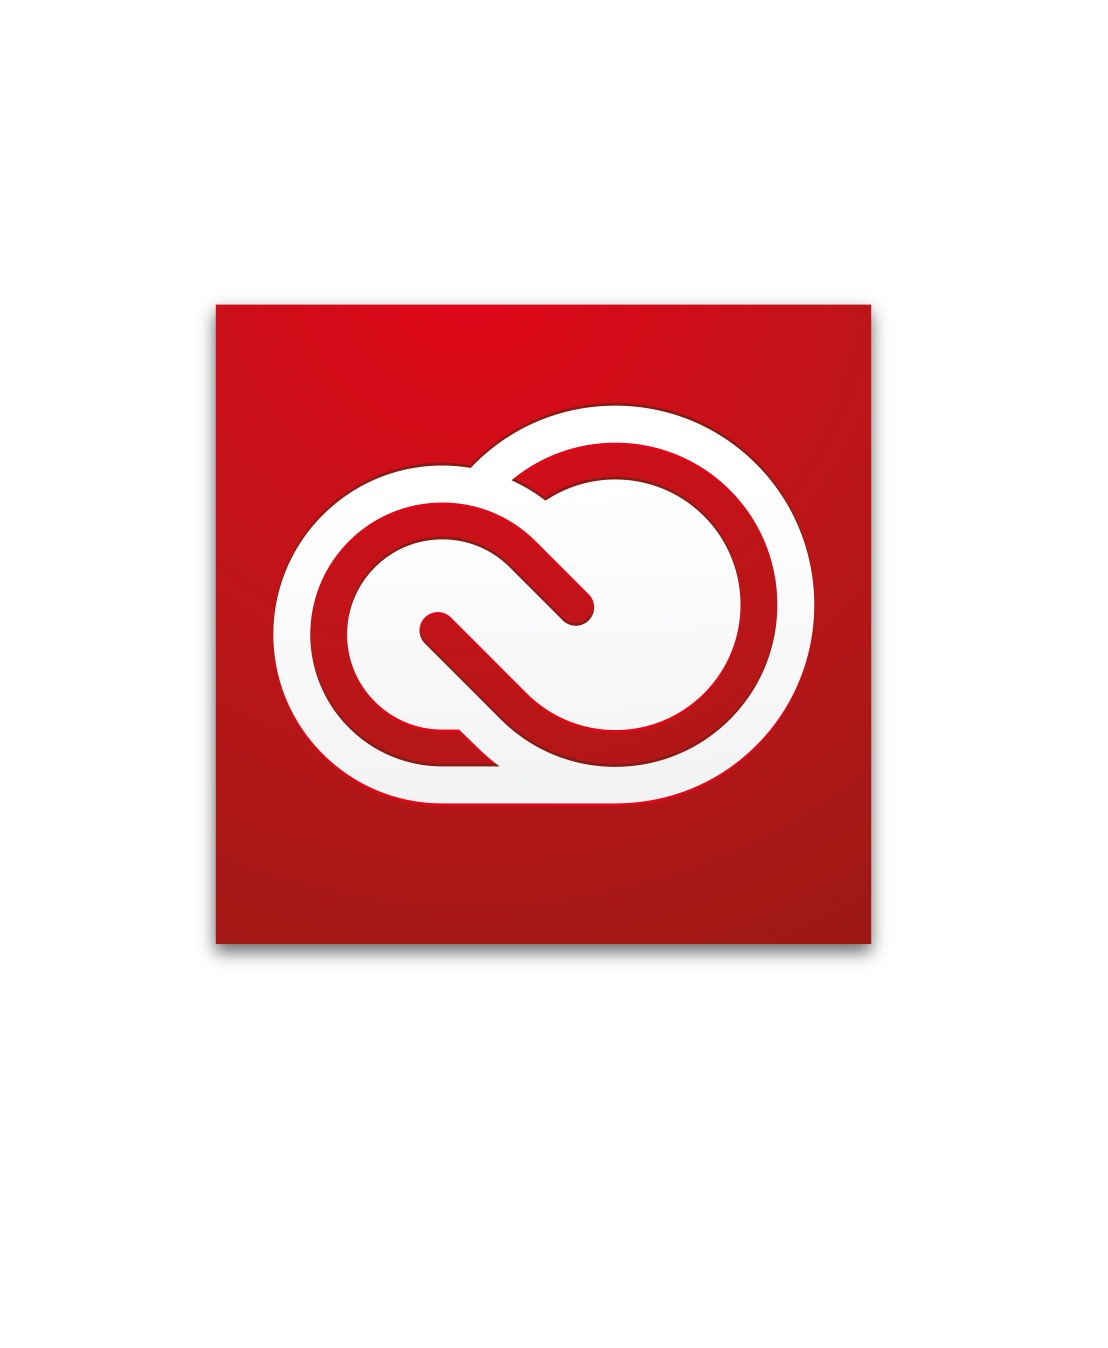 1 Jahr Subscription Renewal für Adobe Creative Cloud for Teams All Apps VIP Lizenz Download Win/Mac, Multilingual (50-99 Lizenzen) (65297757BA03A12)